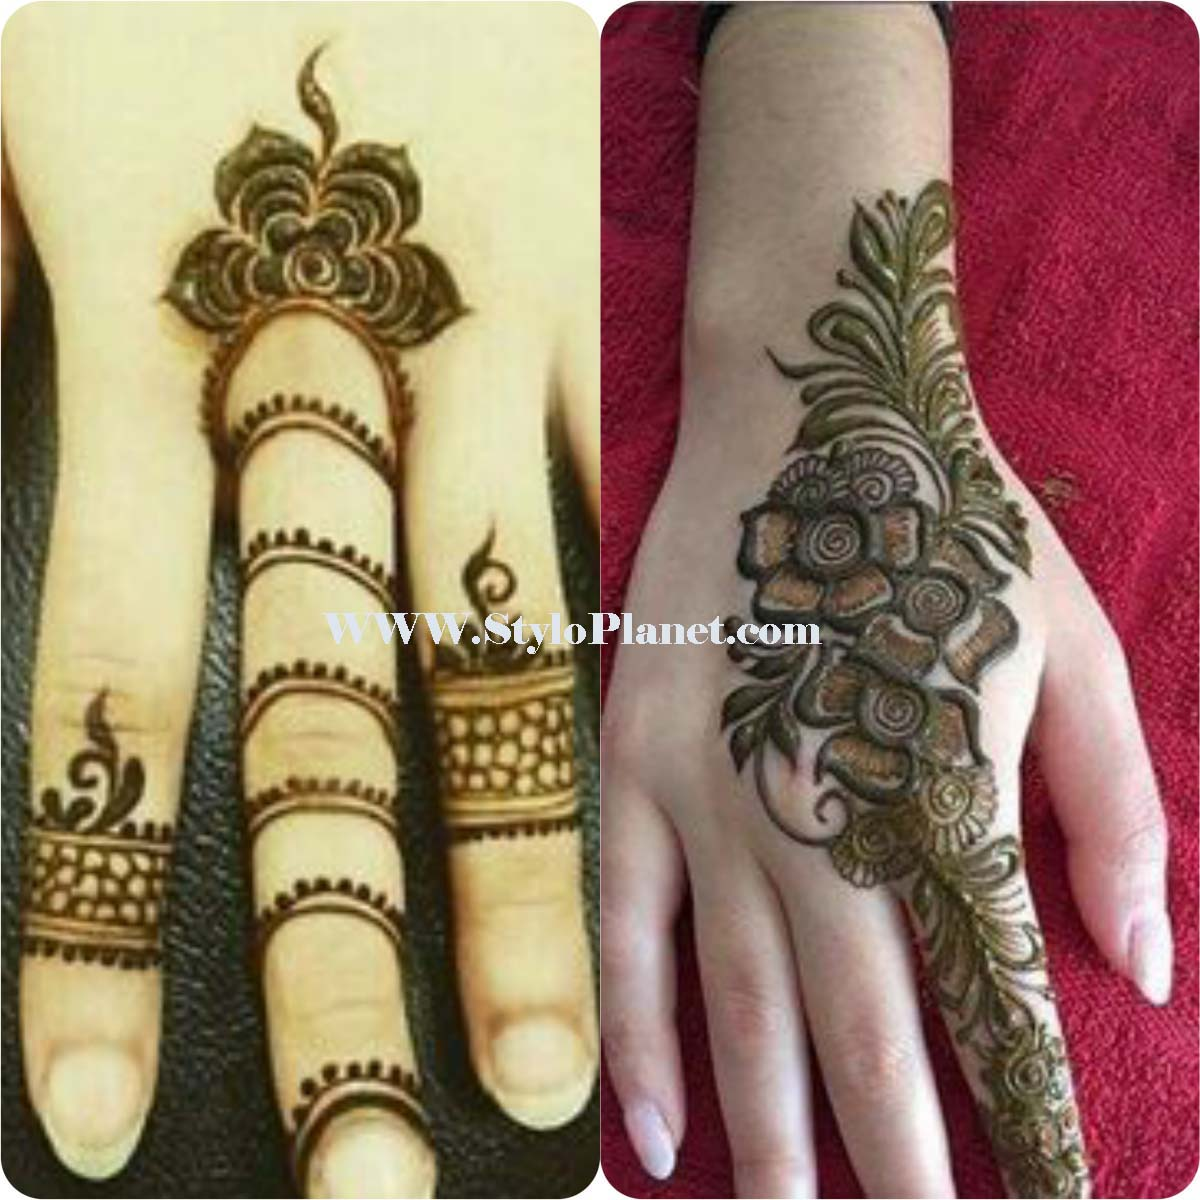 Mehndi design 2017 eid - Popular Latest Simple Arabic Mehndi Designs 2017 For Eid Fashionglint